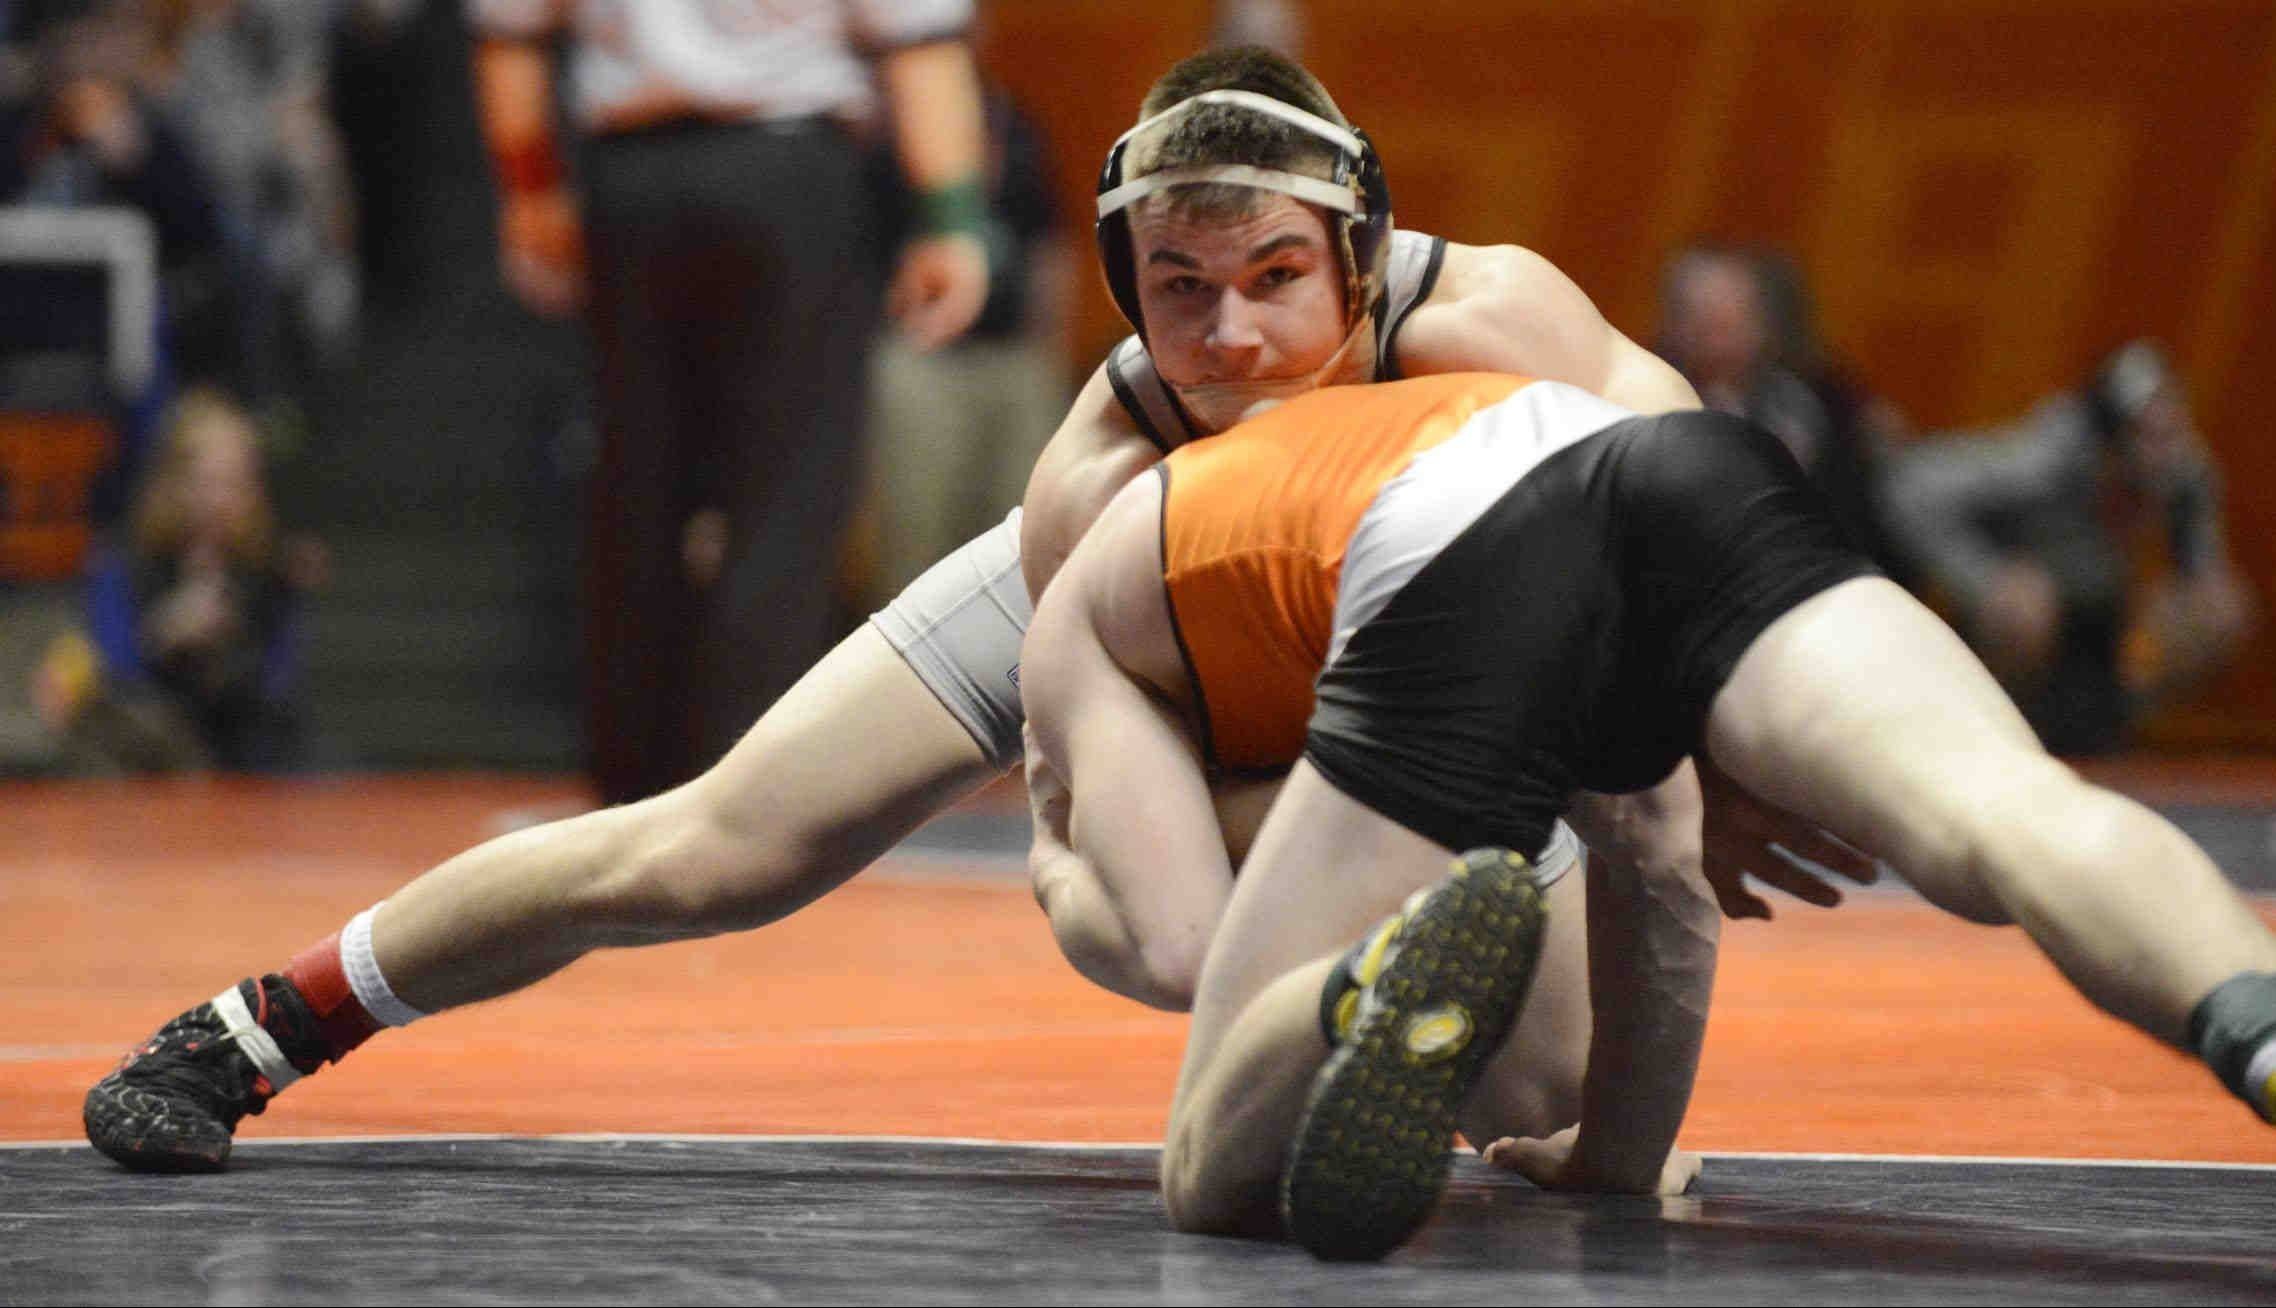 Kaneland's Dan Goress controls Chase Vosburgh of Mt. Vernon in the 145-pound Class 2A IHSA semifinal match Friday at Assembly Hall in Champaign.